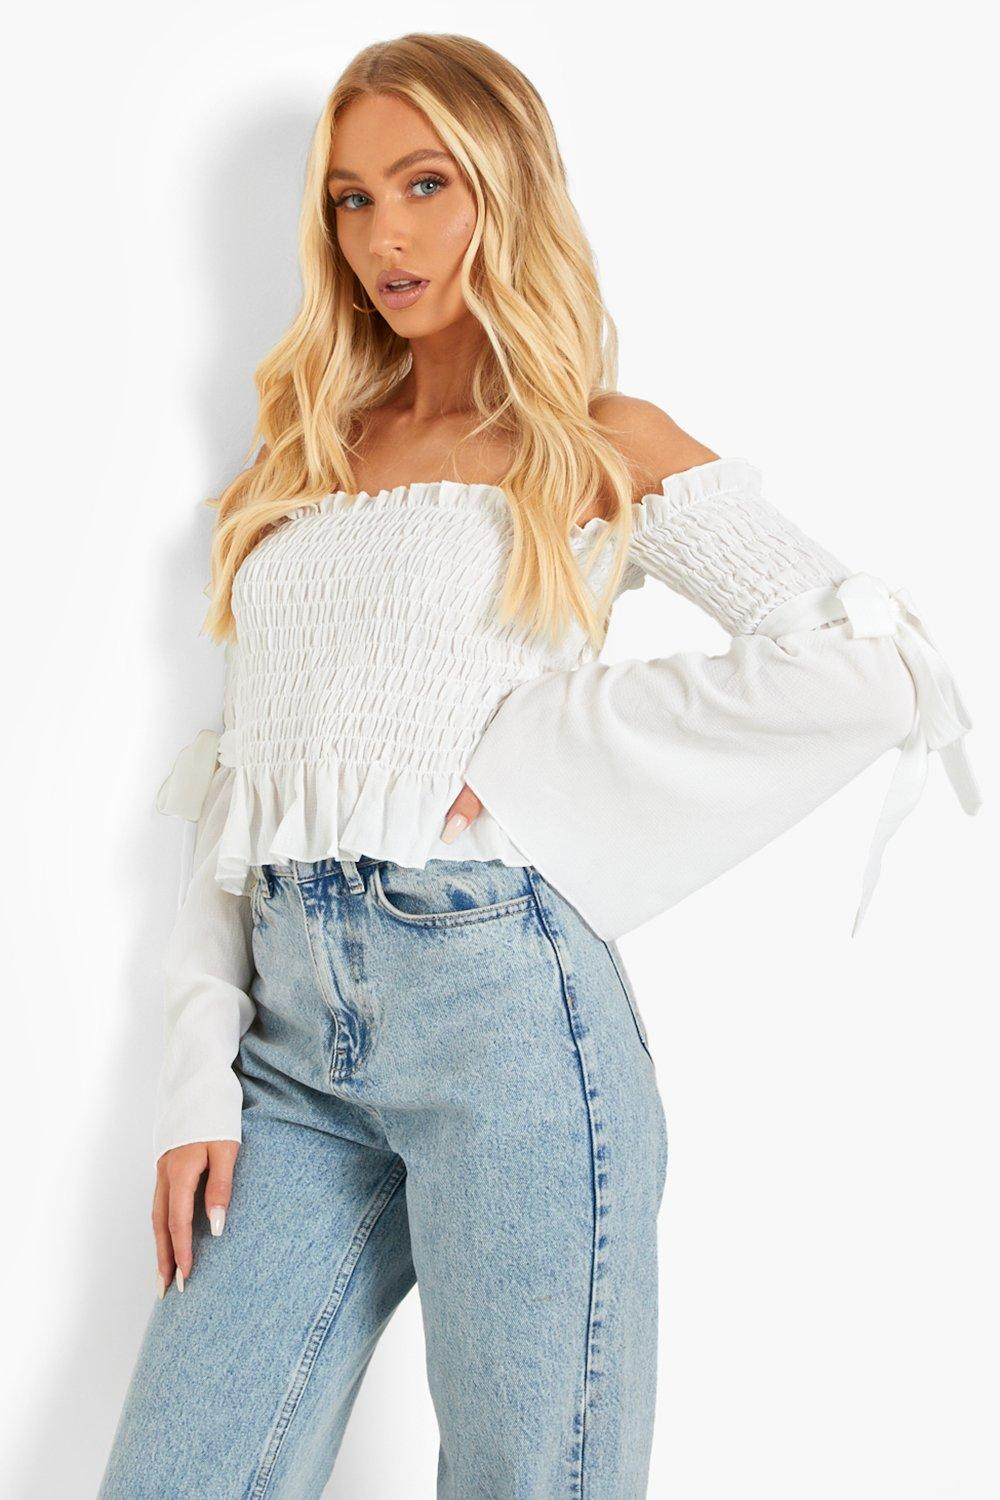 Women's 70s Shirts, Blouses, Hippie Tops Womens Woven Shirred Flared Sleeve Off The Shoulder Top - White - 12 $12.50 AT vintagedancer.com